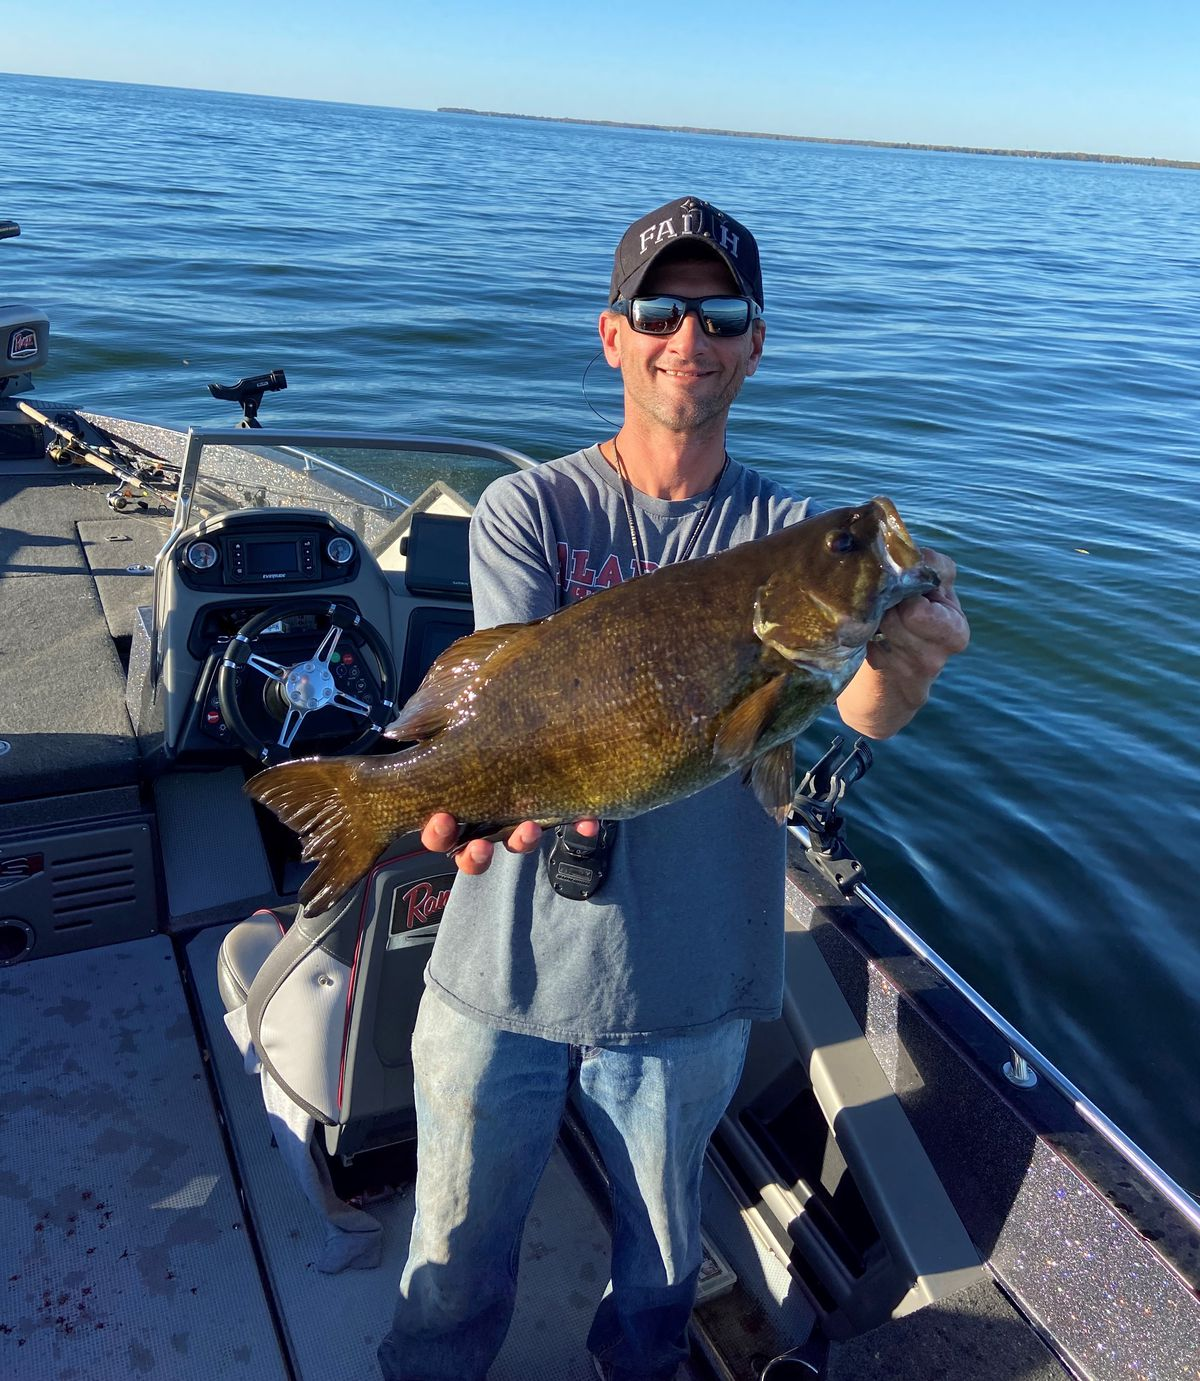 Tim Potoczny with a nice smallmouth bass from Mille Lacs. Provided by McQuoid's Inn